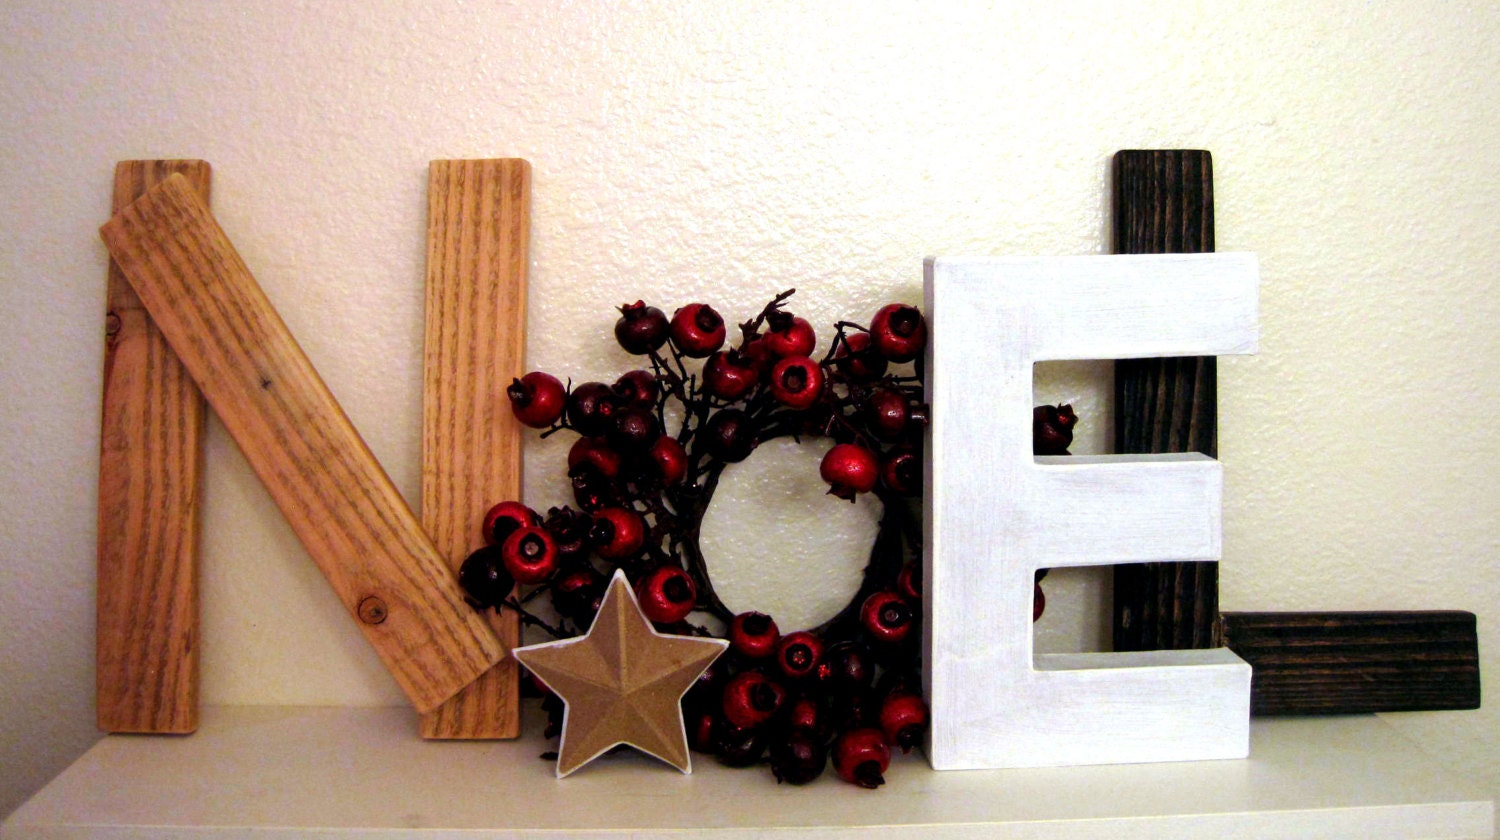 Holiday decor, Noel sign with small star, Pomegranate wreath, 9'' tall, wooden Christmas decoration, Mantle decor, Brown and Red décor